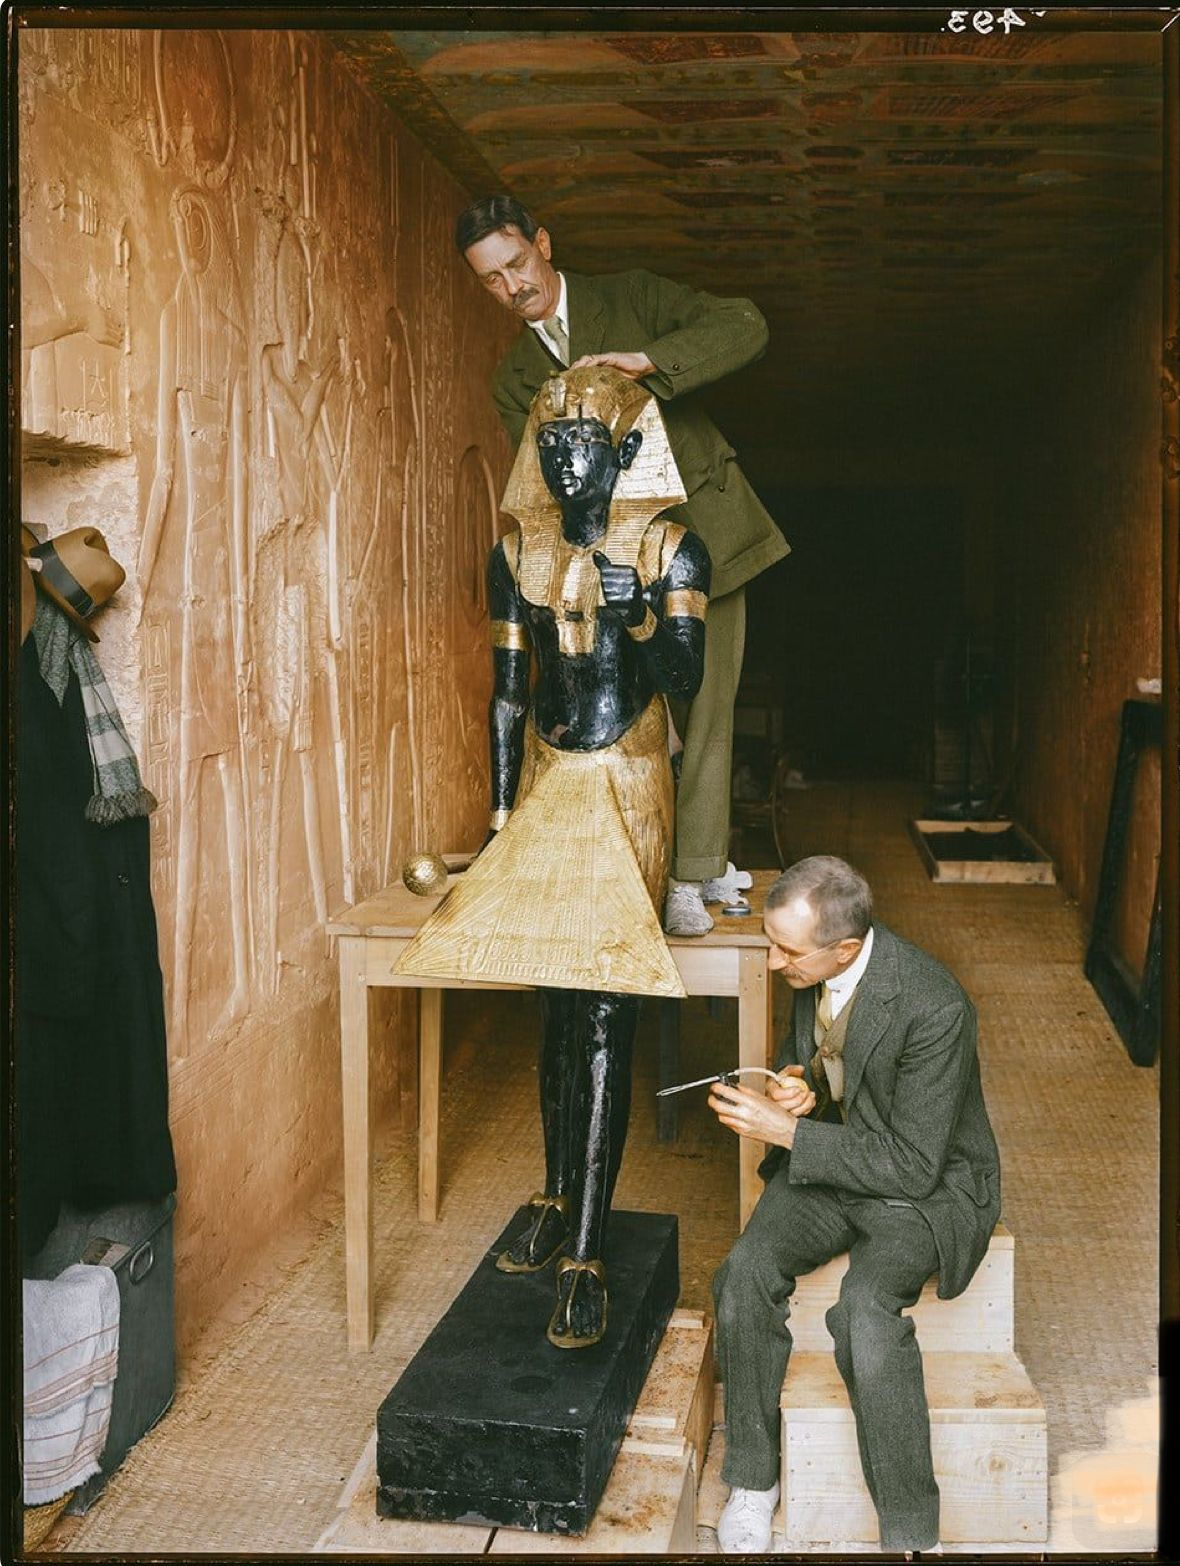 Archaeologist Howard Carter Uncovered The Spectacular Tomb Of The Boy King In 1922 Egypt History Tutankhamun Ancient Egyptian